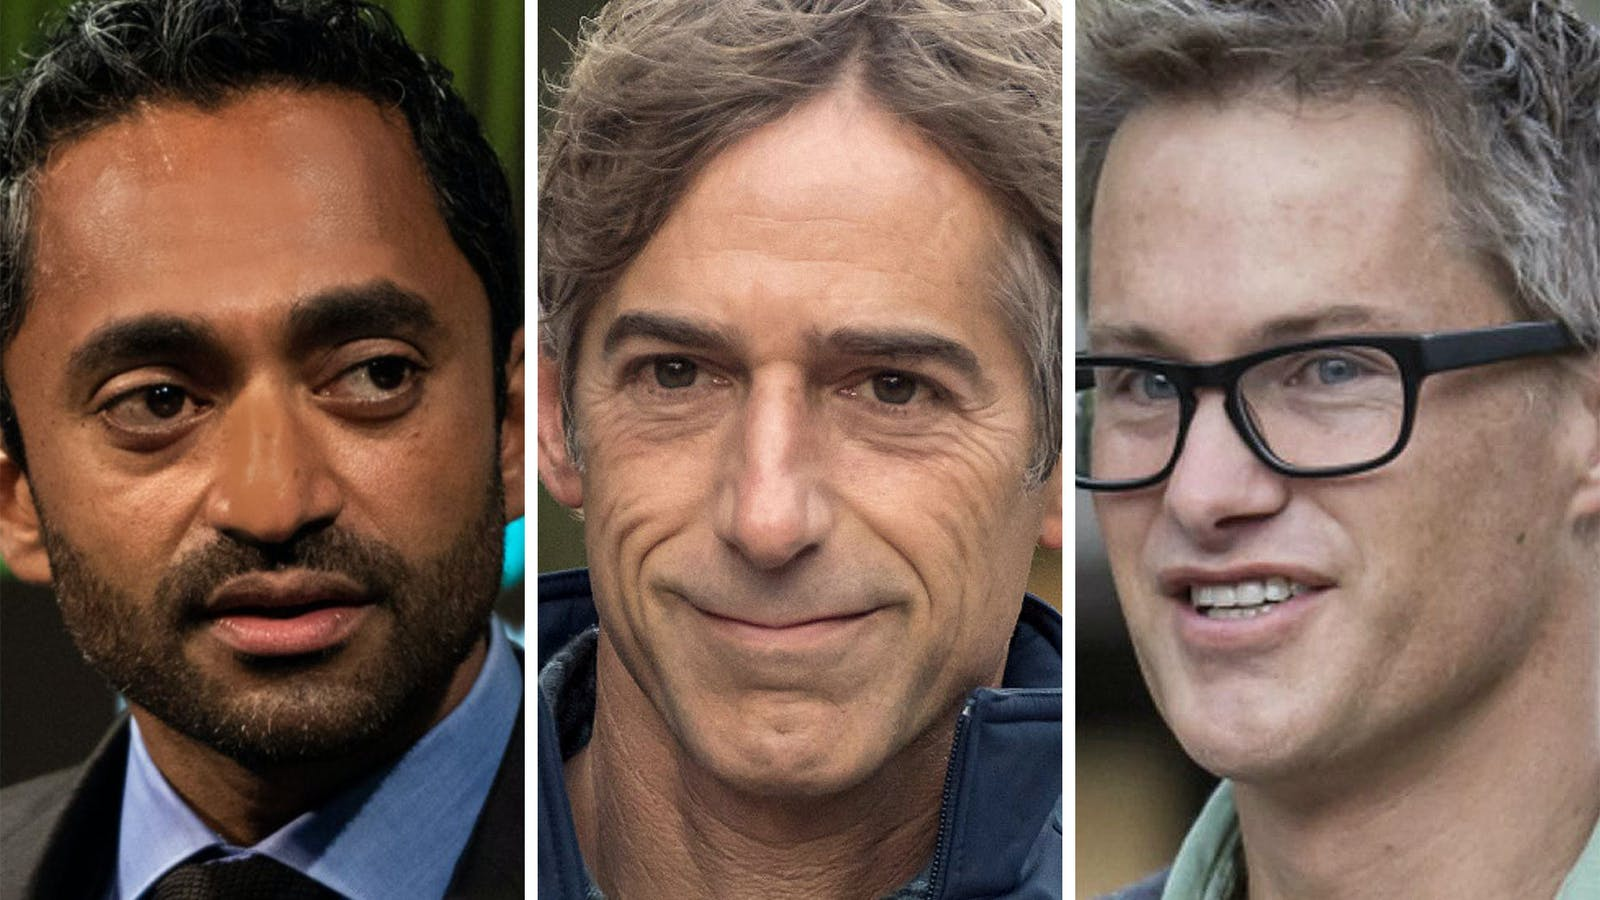 From left: Chamath Palihapitiya, Mark Pincus and Kevin Hartz. Photos by Bloomberg